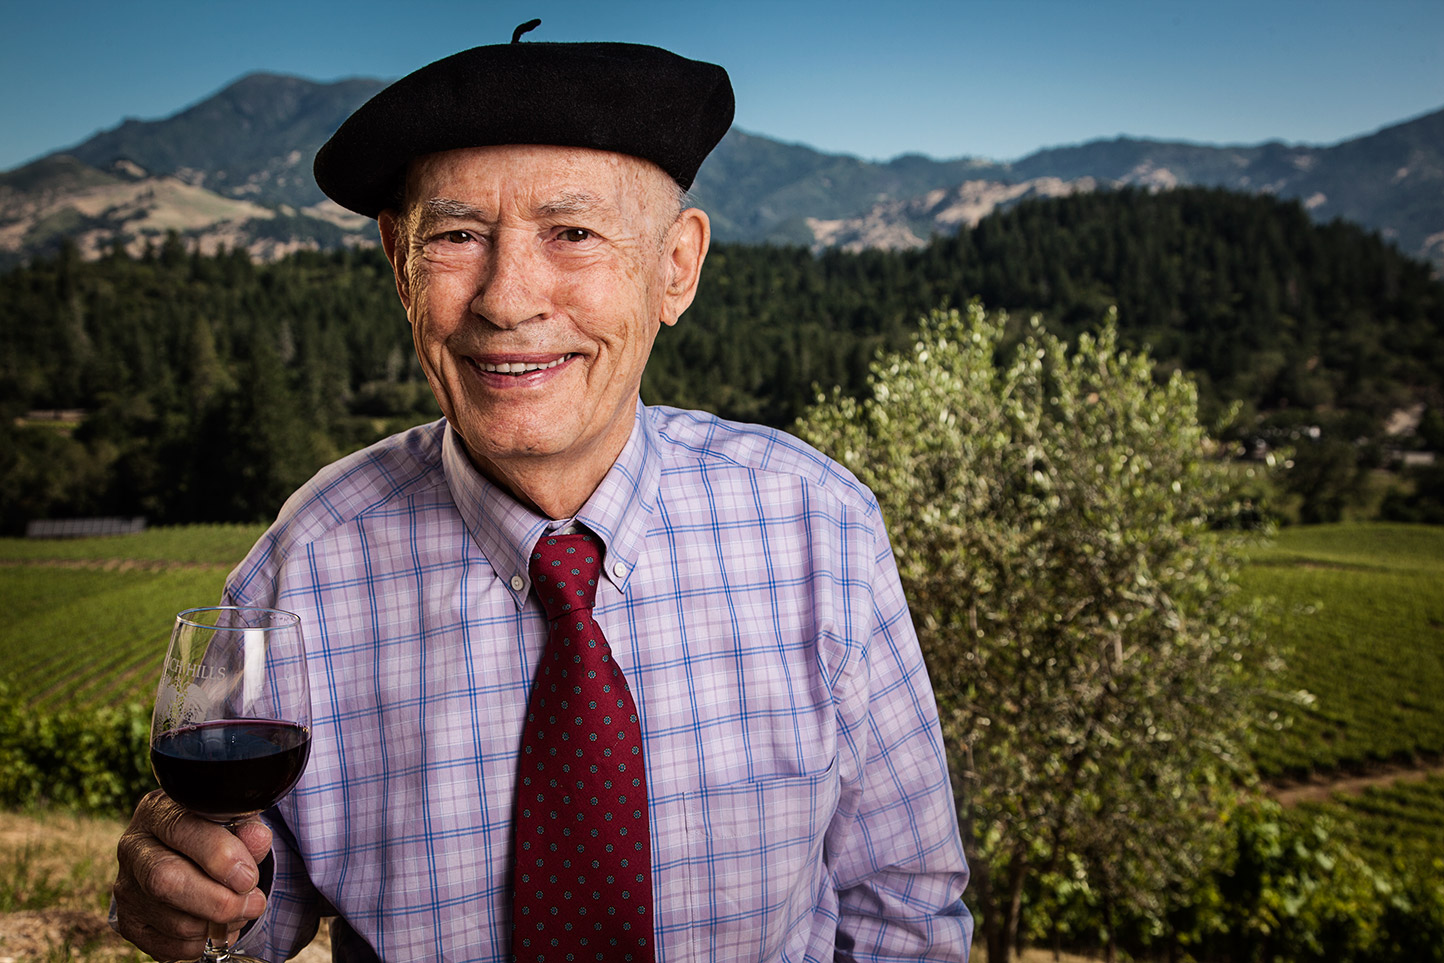 Mike Grgich Portrait: Rocco Ceselin Photography Portrait